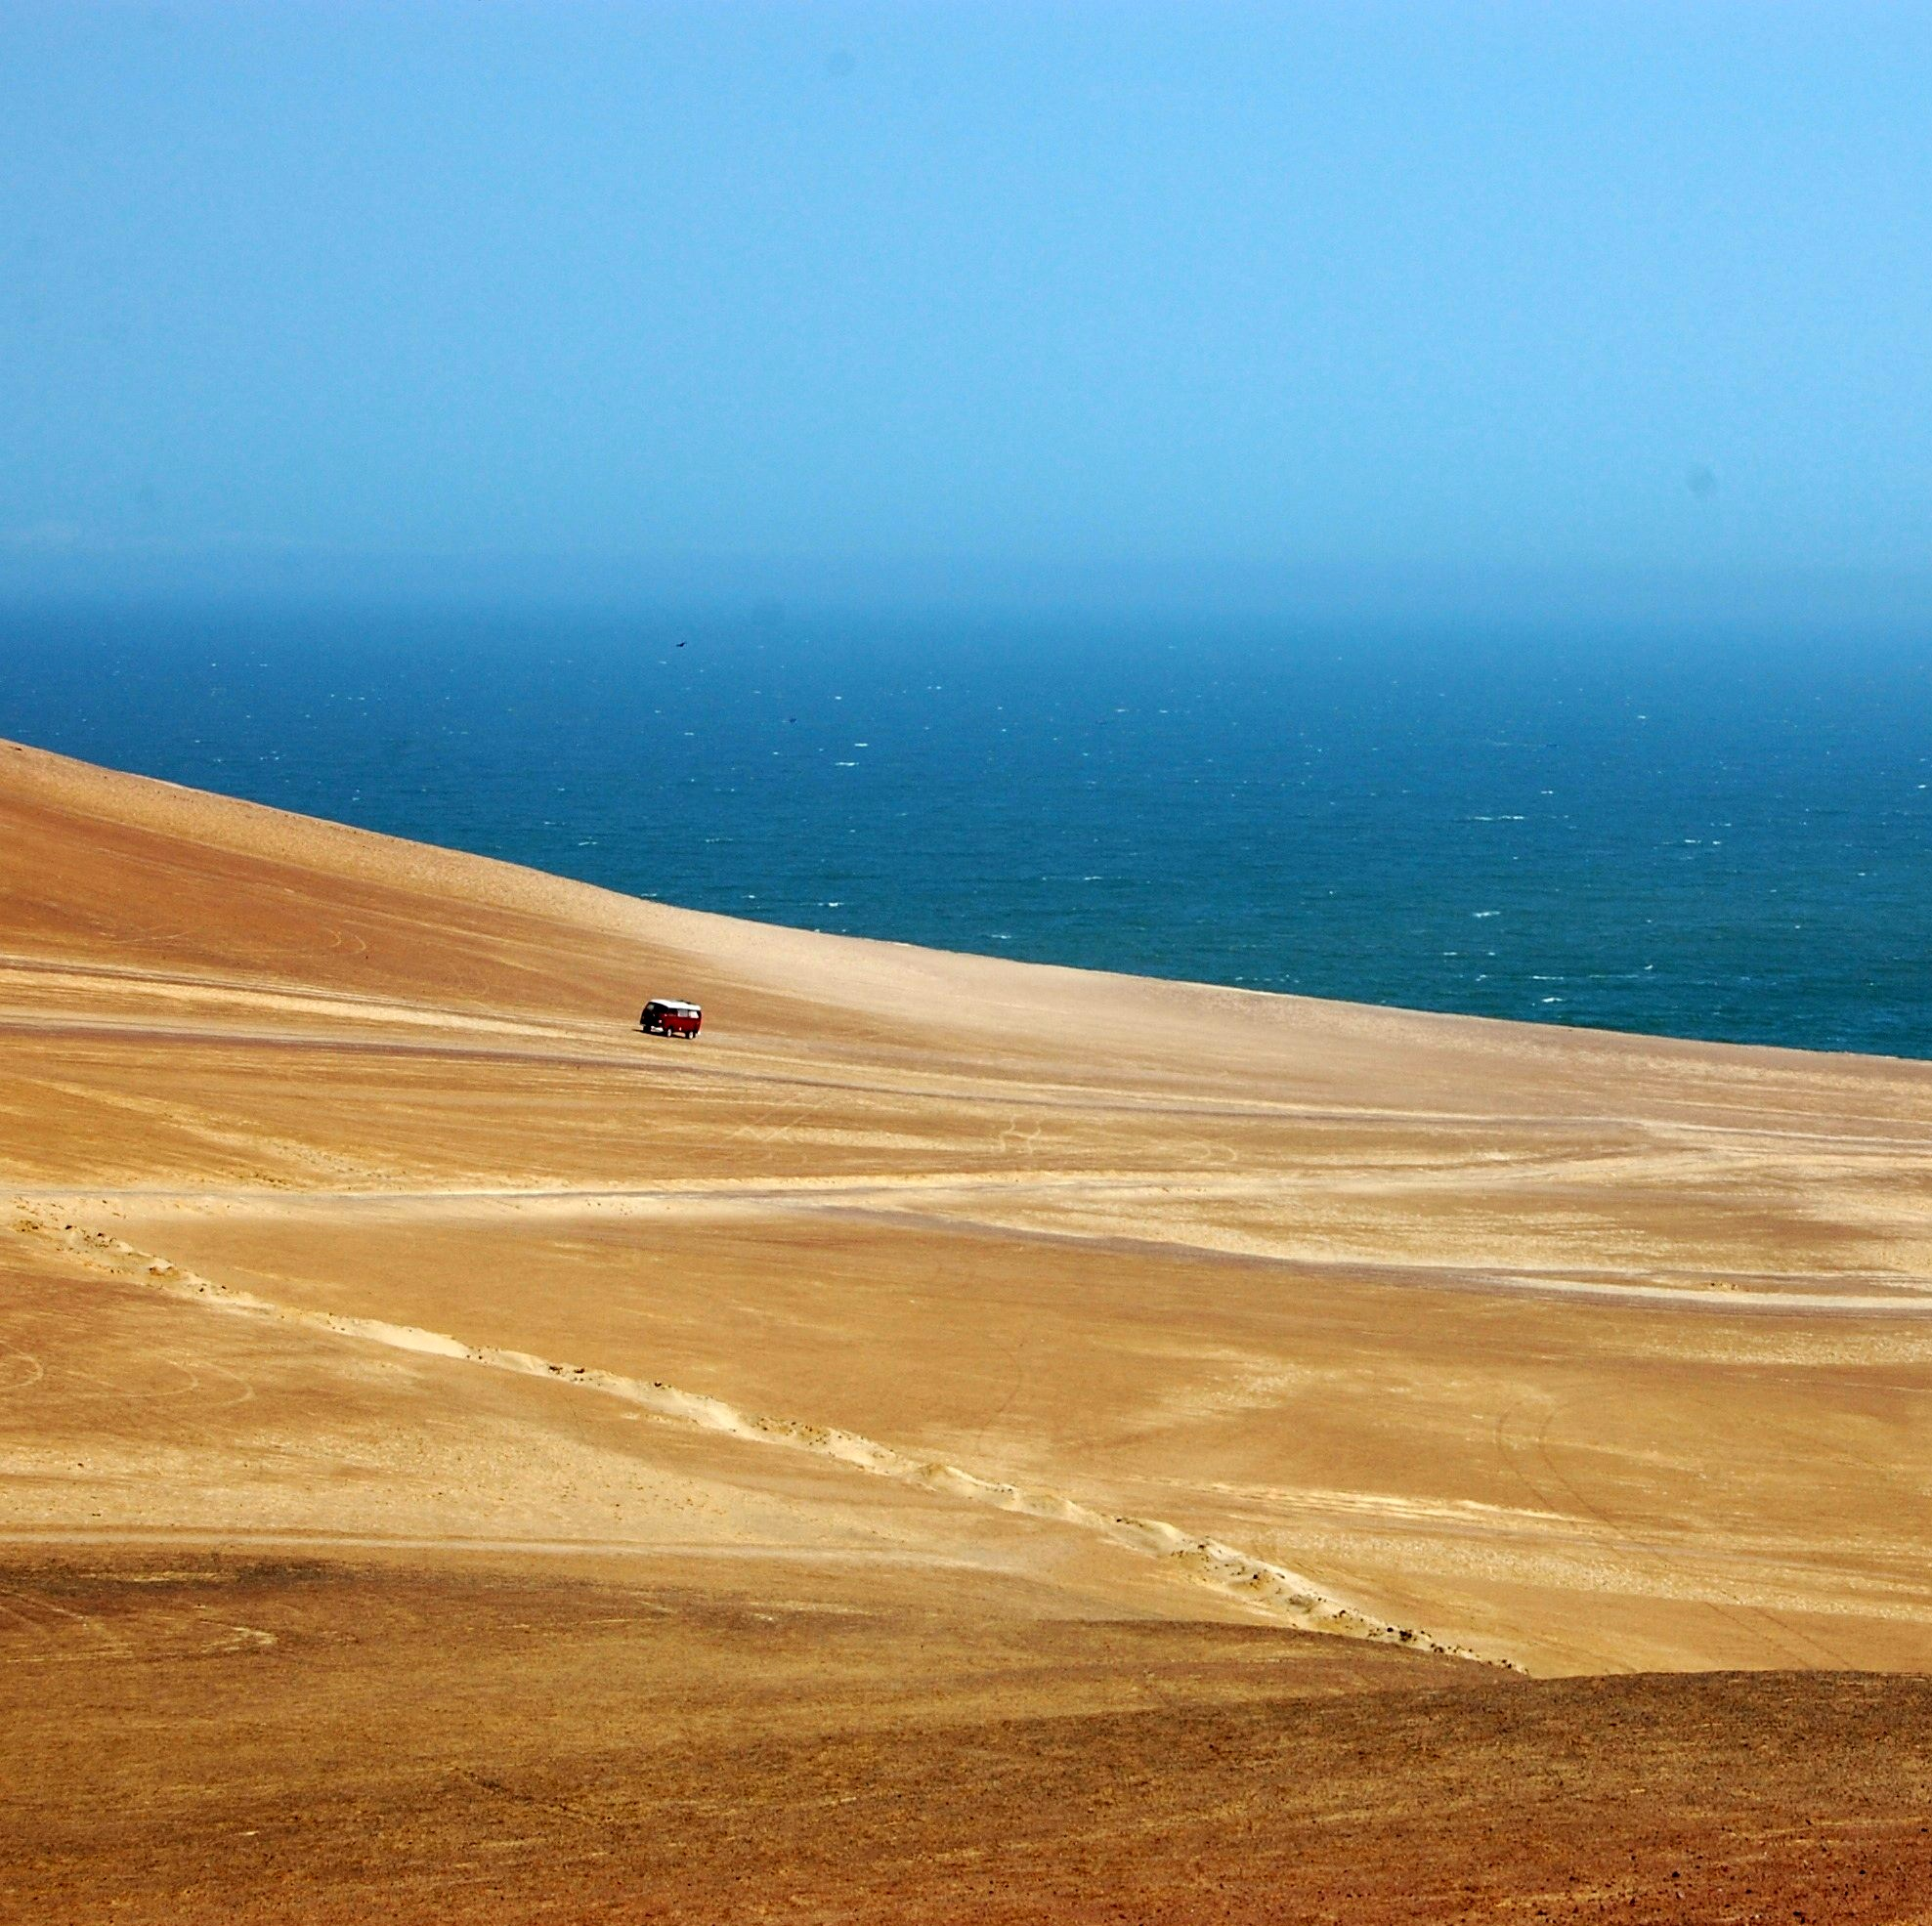 Driving on the dunes in Paracas National Park, Peru